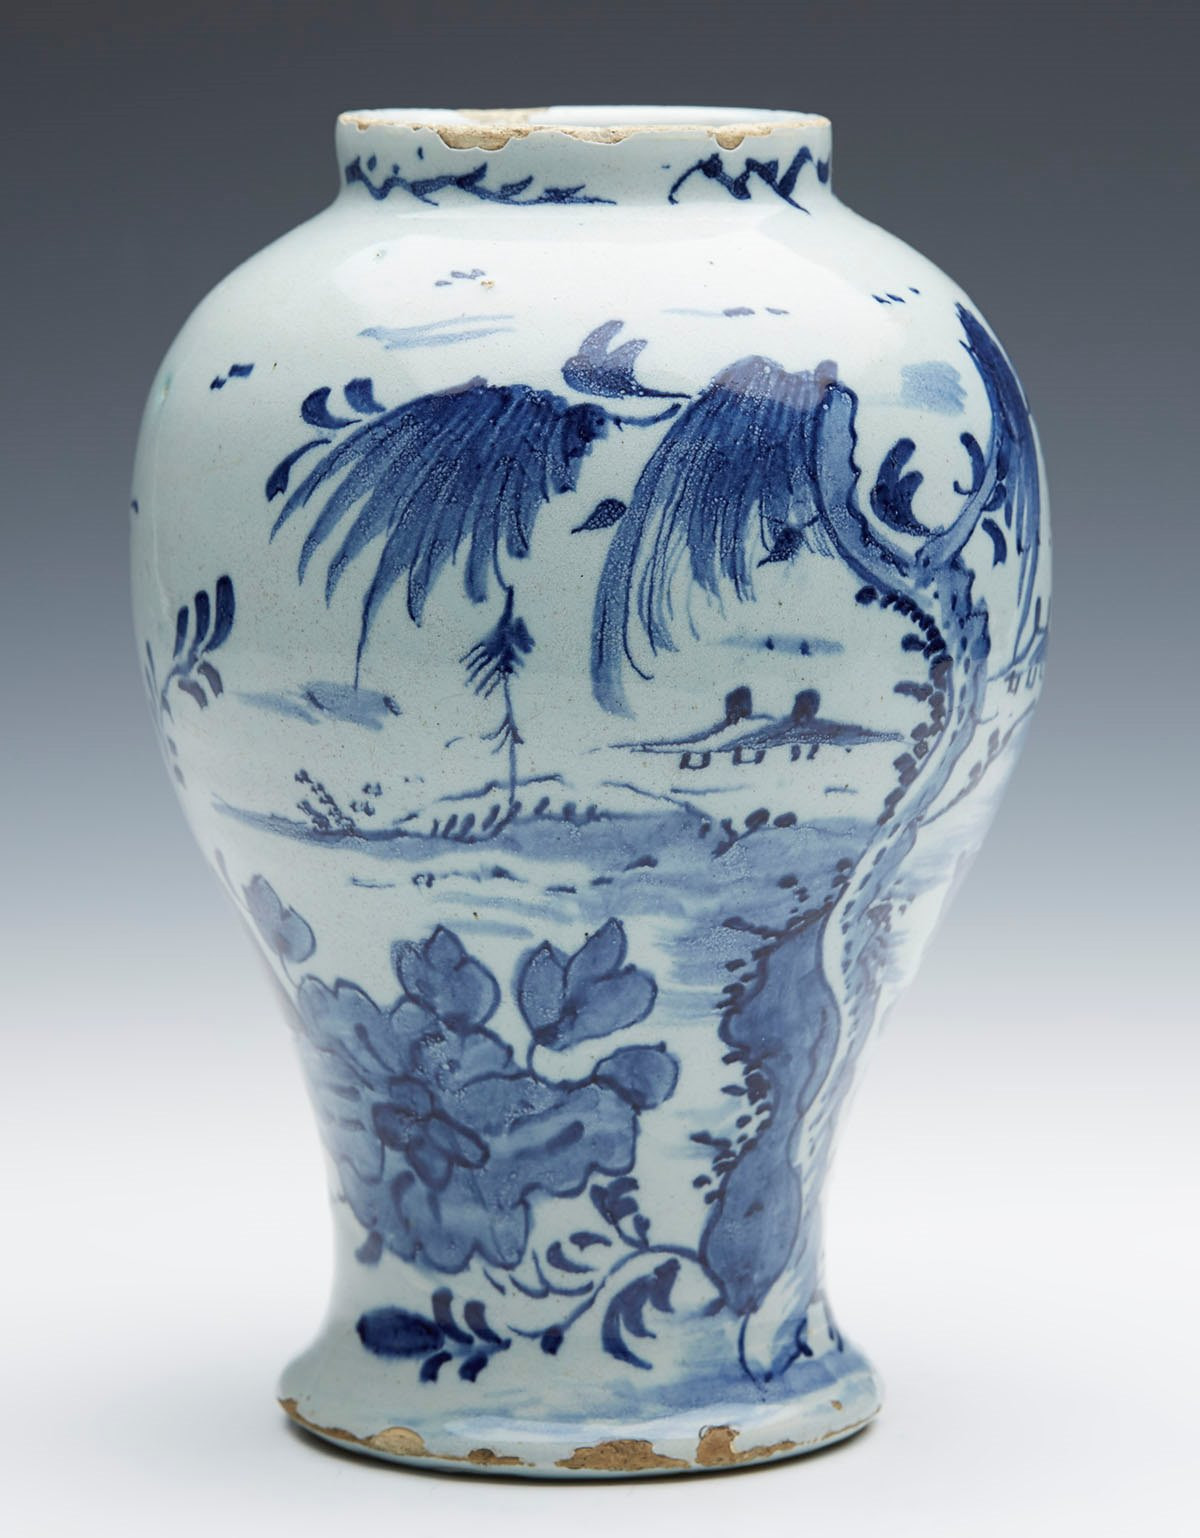 delft vase value of antique delft chinoiserie design blue white vase 18th c ebay in the age and authenticity of the piece and we are always happy to provide additional information if required we also offer a 7 day return policy however